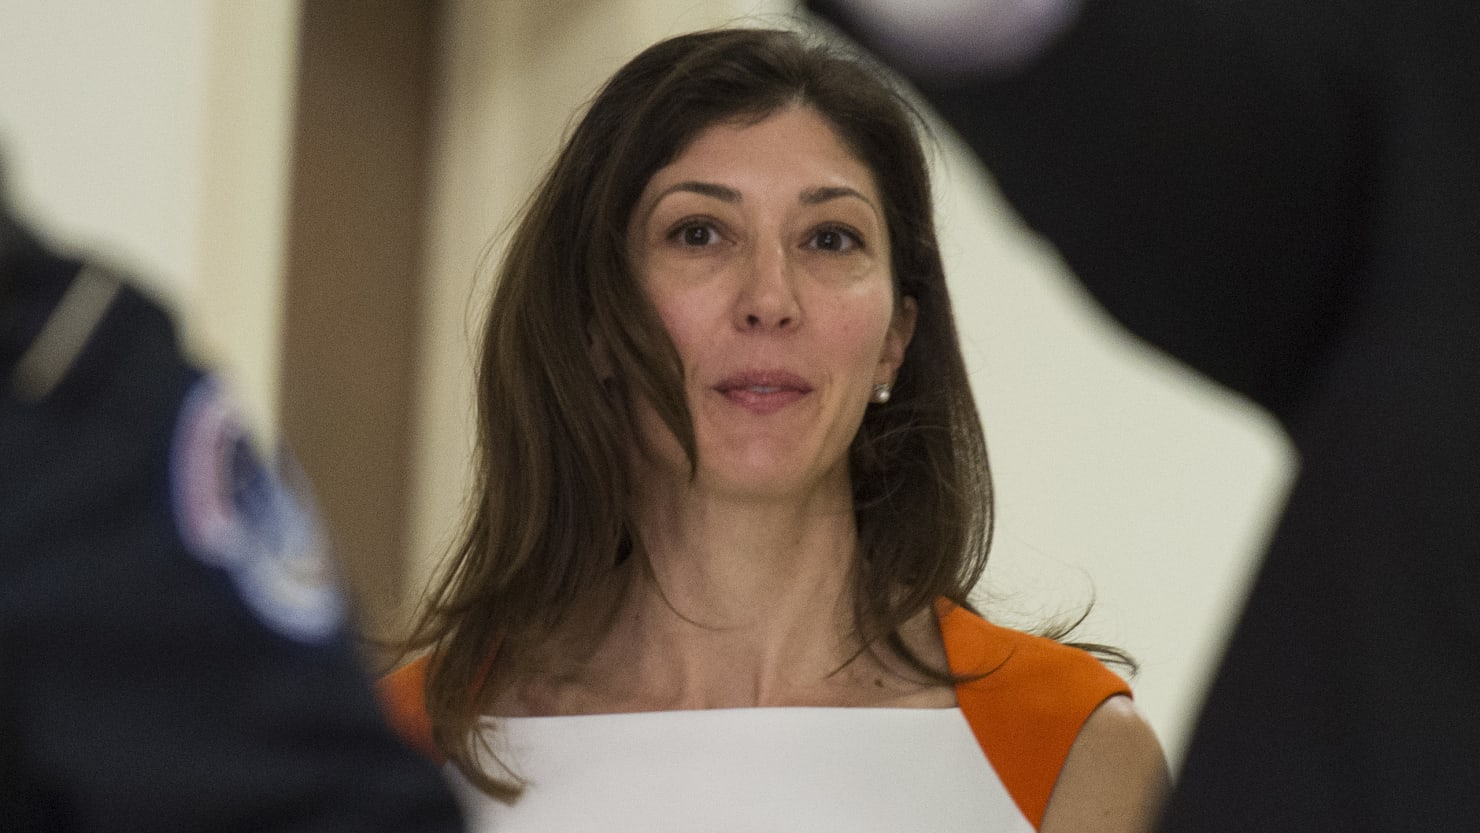 Lisa Page to Roger Stone Prosecutors: 'You Are on the Right Side of History'